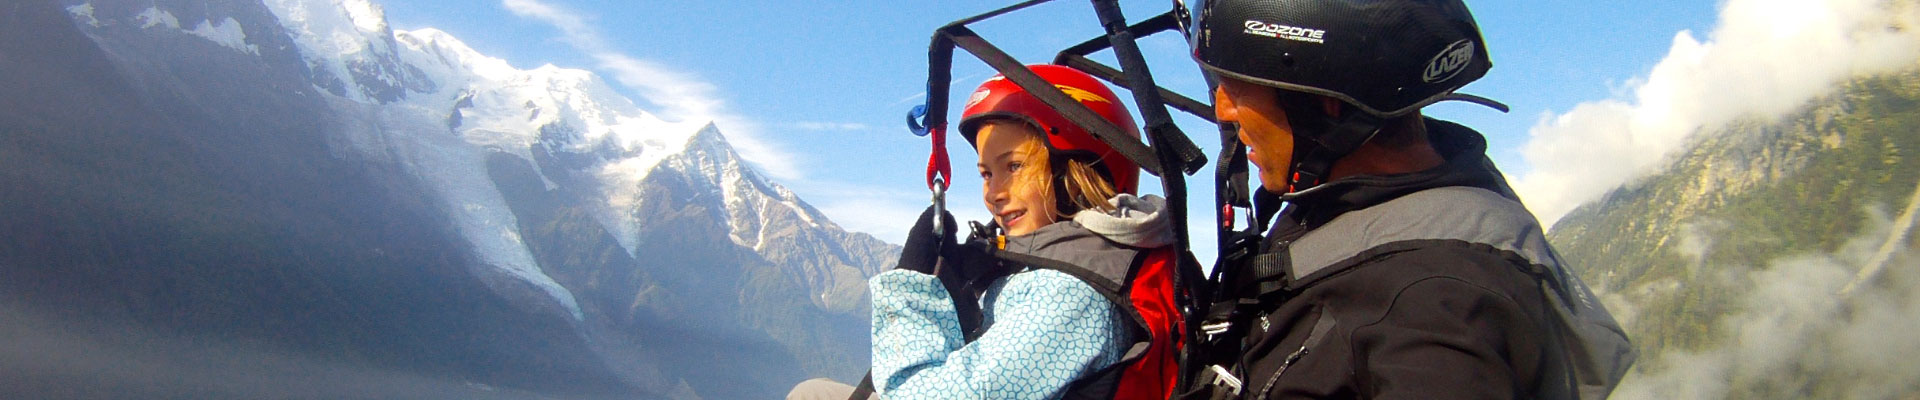 Try your first paraglidling tandem flight over Chamonix